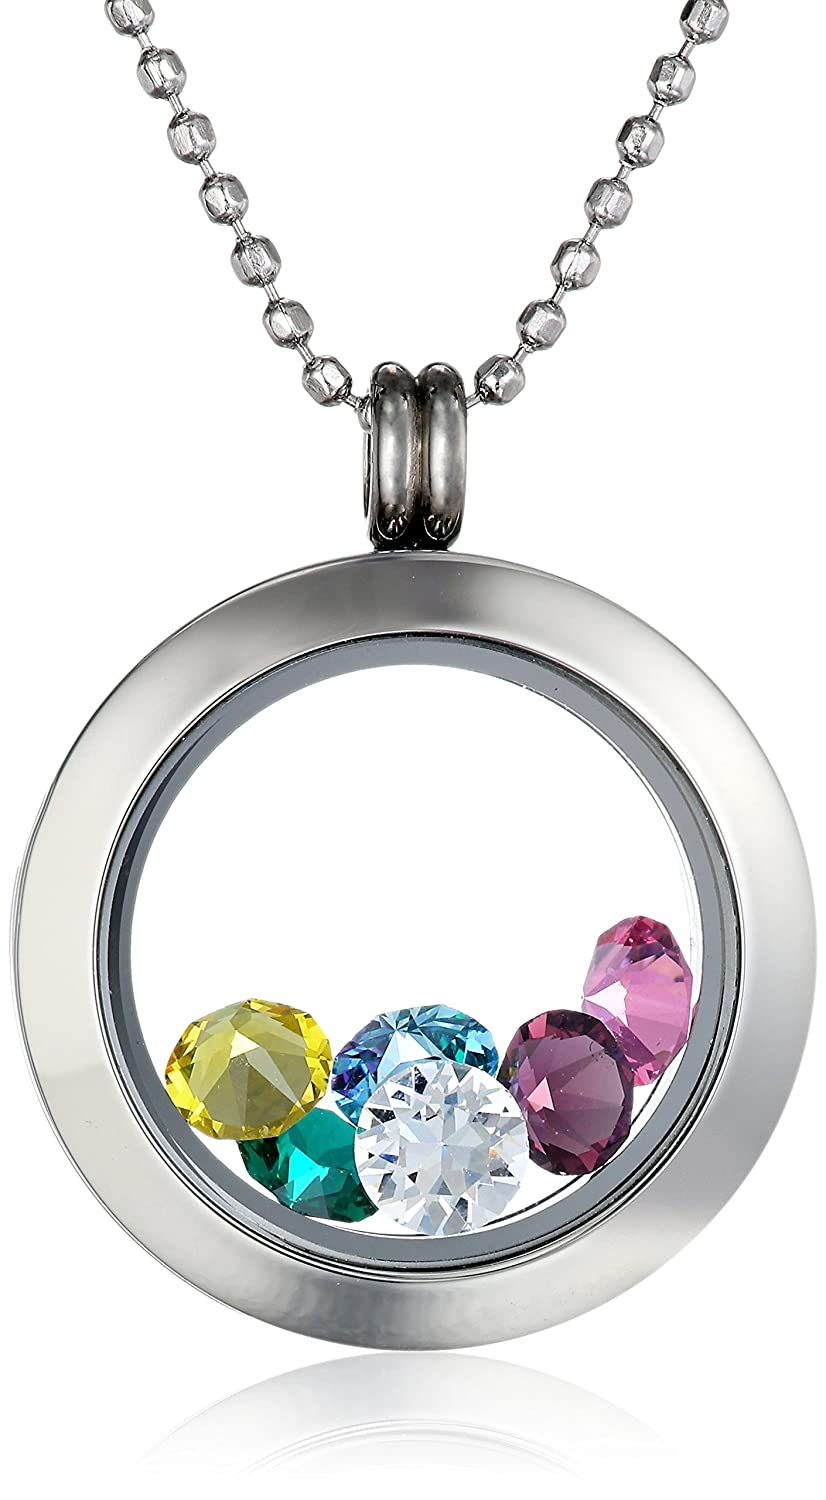 lockets with necklaces circle pieces m necklace you charms of glass clear locket charm o l inside